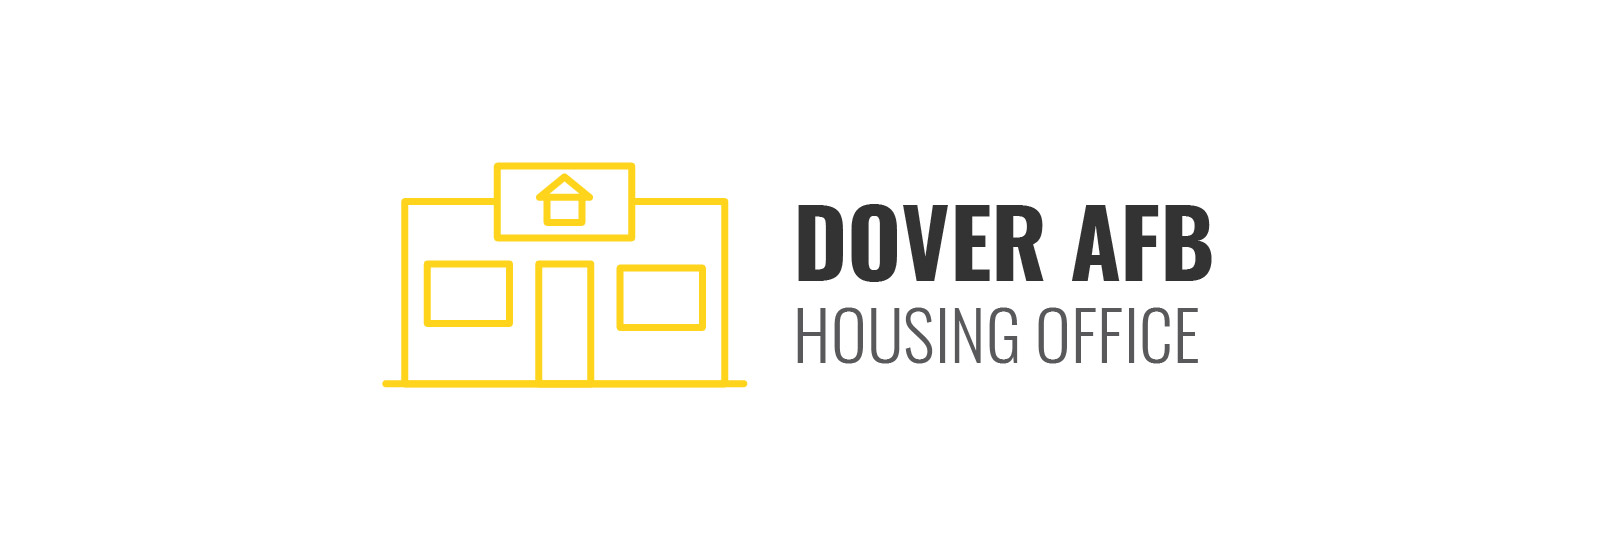 Dover AFB Housing Office